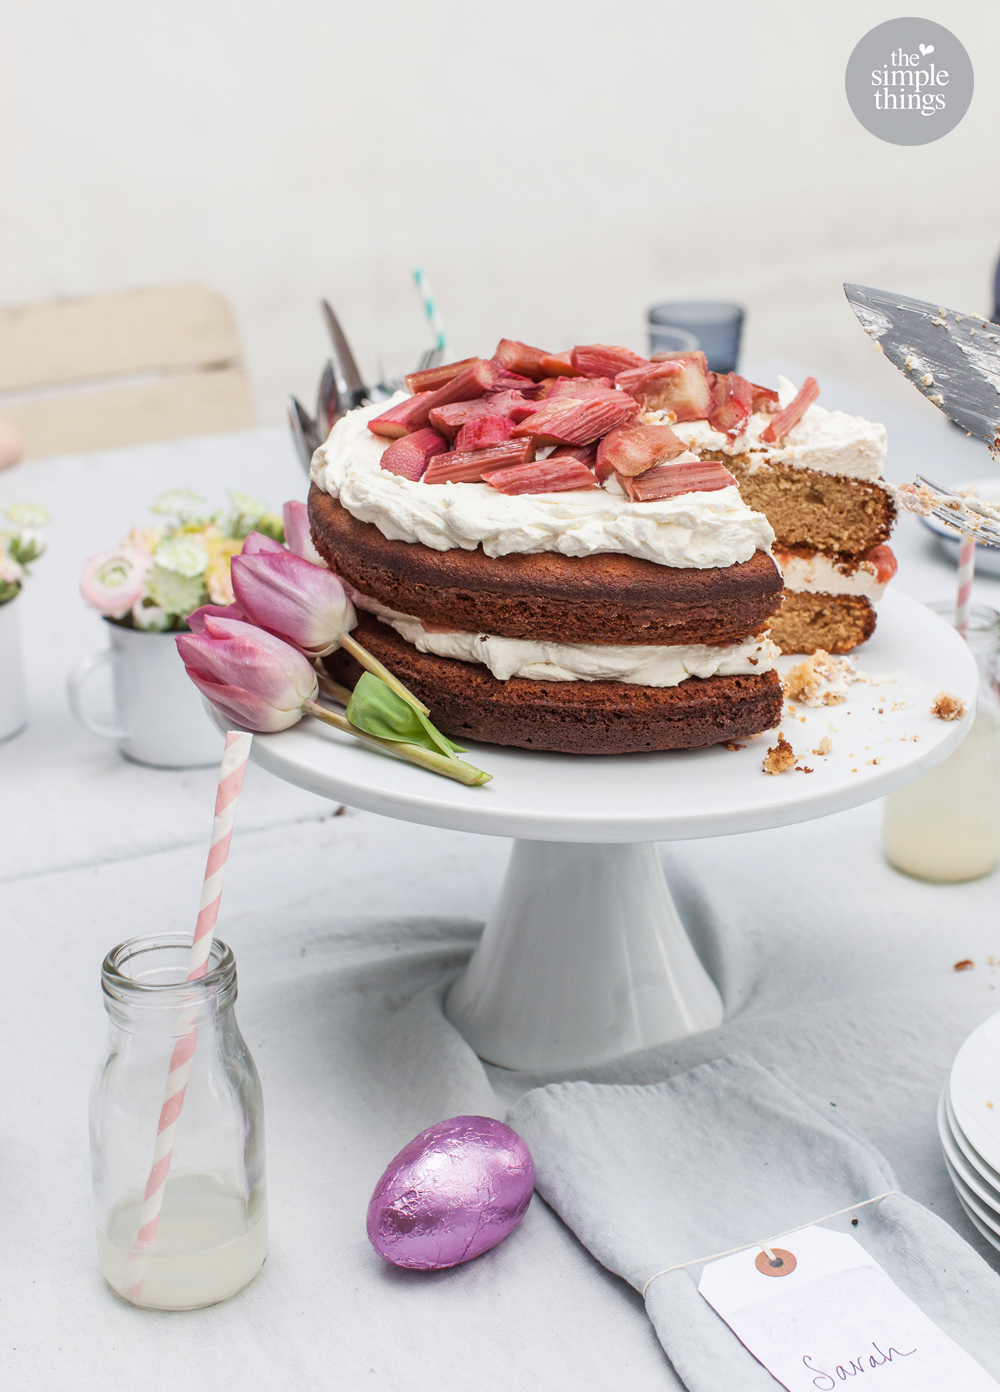 Recipe: LOUISE GORROD Photography: EMMA GUTTERIDGE